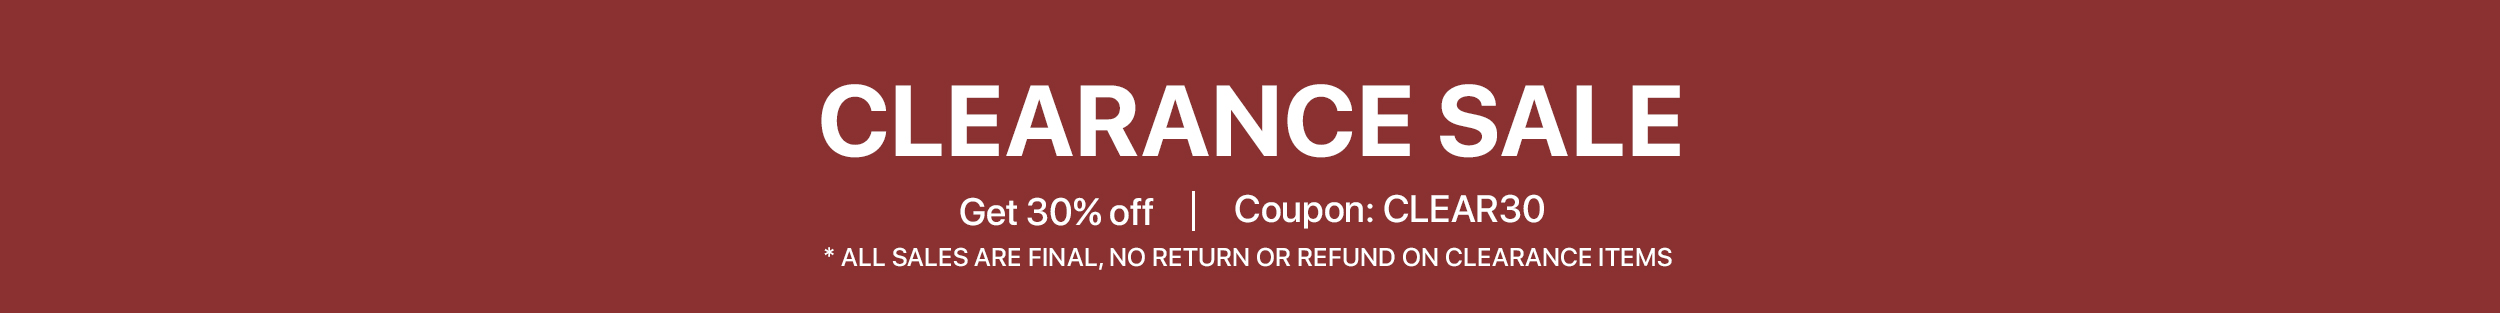 Vikingbags Clearance Sale